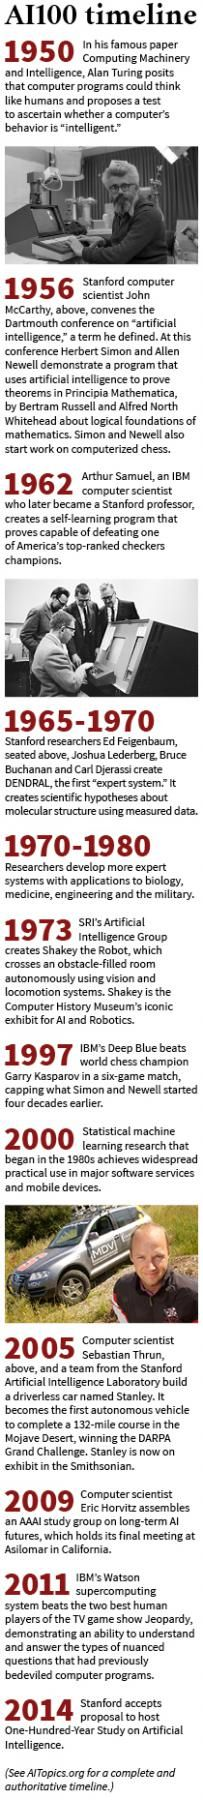 a study of artificial intelligence Preparing for the future of artificial intelligence 2 given the strategic importance of ai, moreover, it is appropriate for the federal government to monitor.